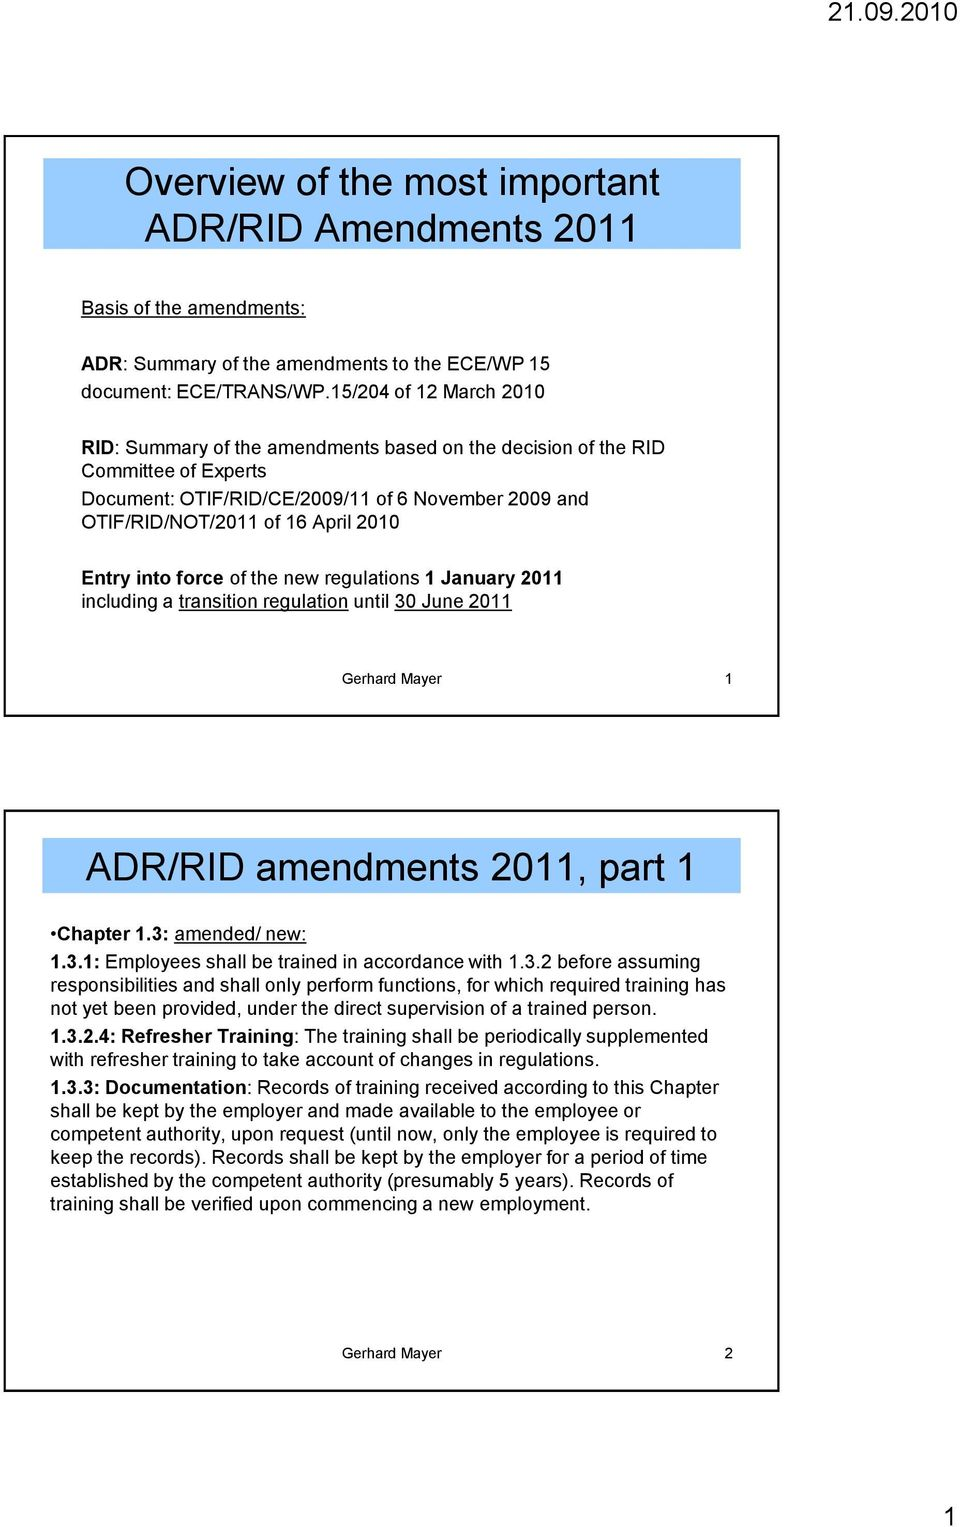 Entry into force of the new regulations 1 January 2011 including a transition regulation until 30 June 2011 Gerhard Mayer 1 ADR/RID amendments 2011, part 1 Chapter 1.3: amended/ new: 1.3.1: Employees shall be trained in accordance with 1.